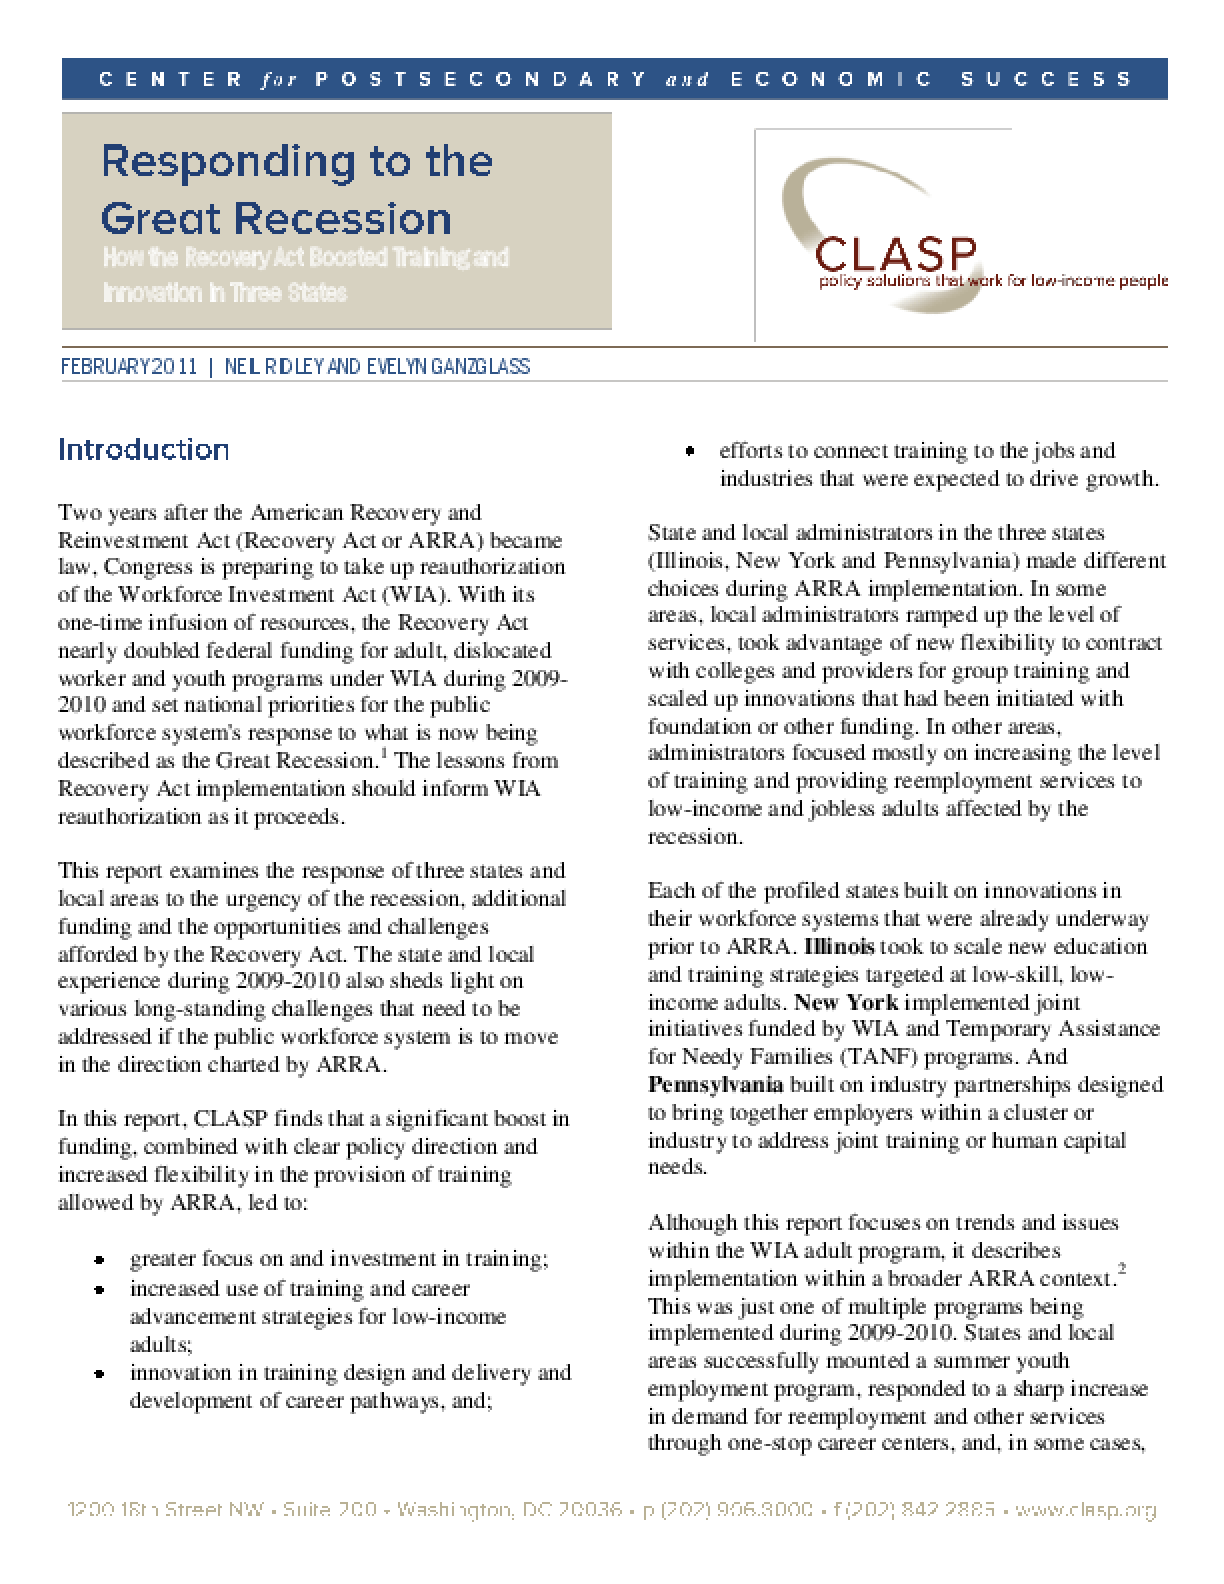 Responding to the Great Recession: How the Recovery Act Boosted Training and Innovation in Three States